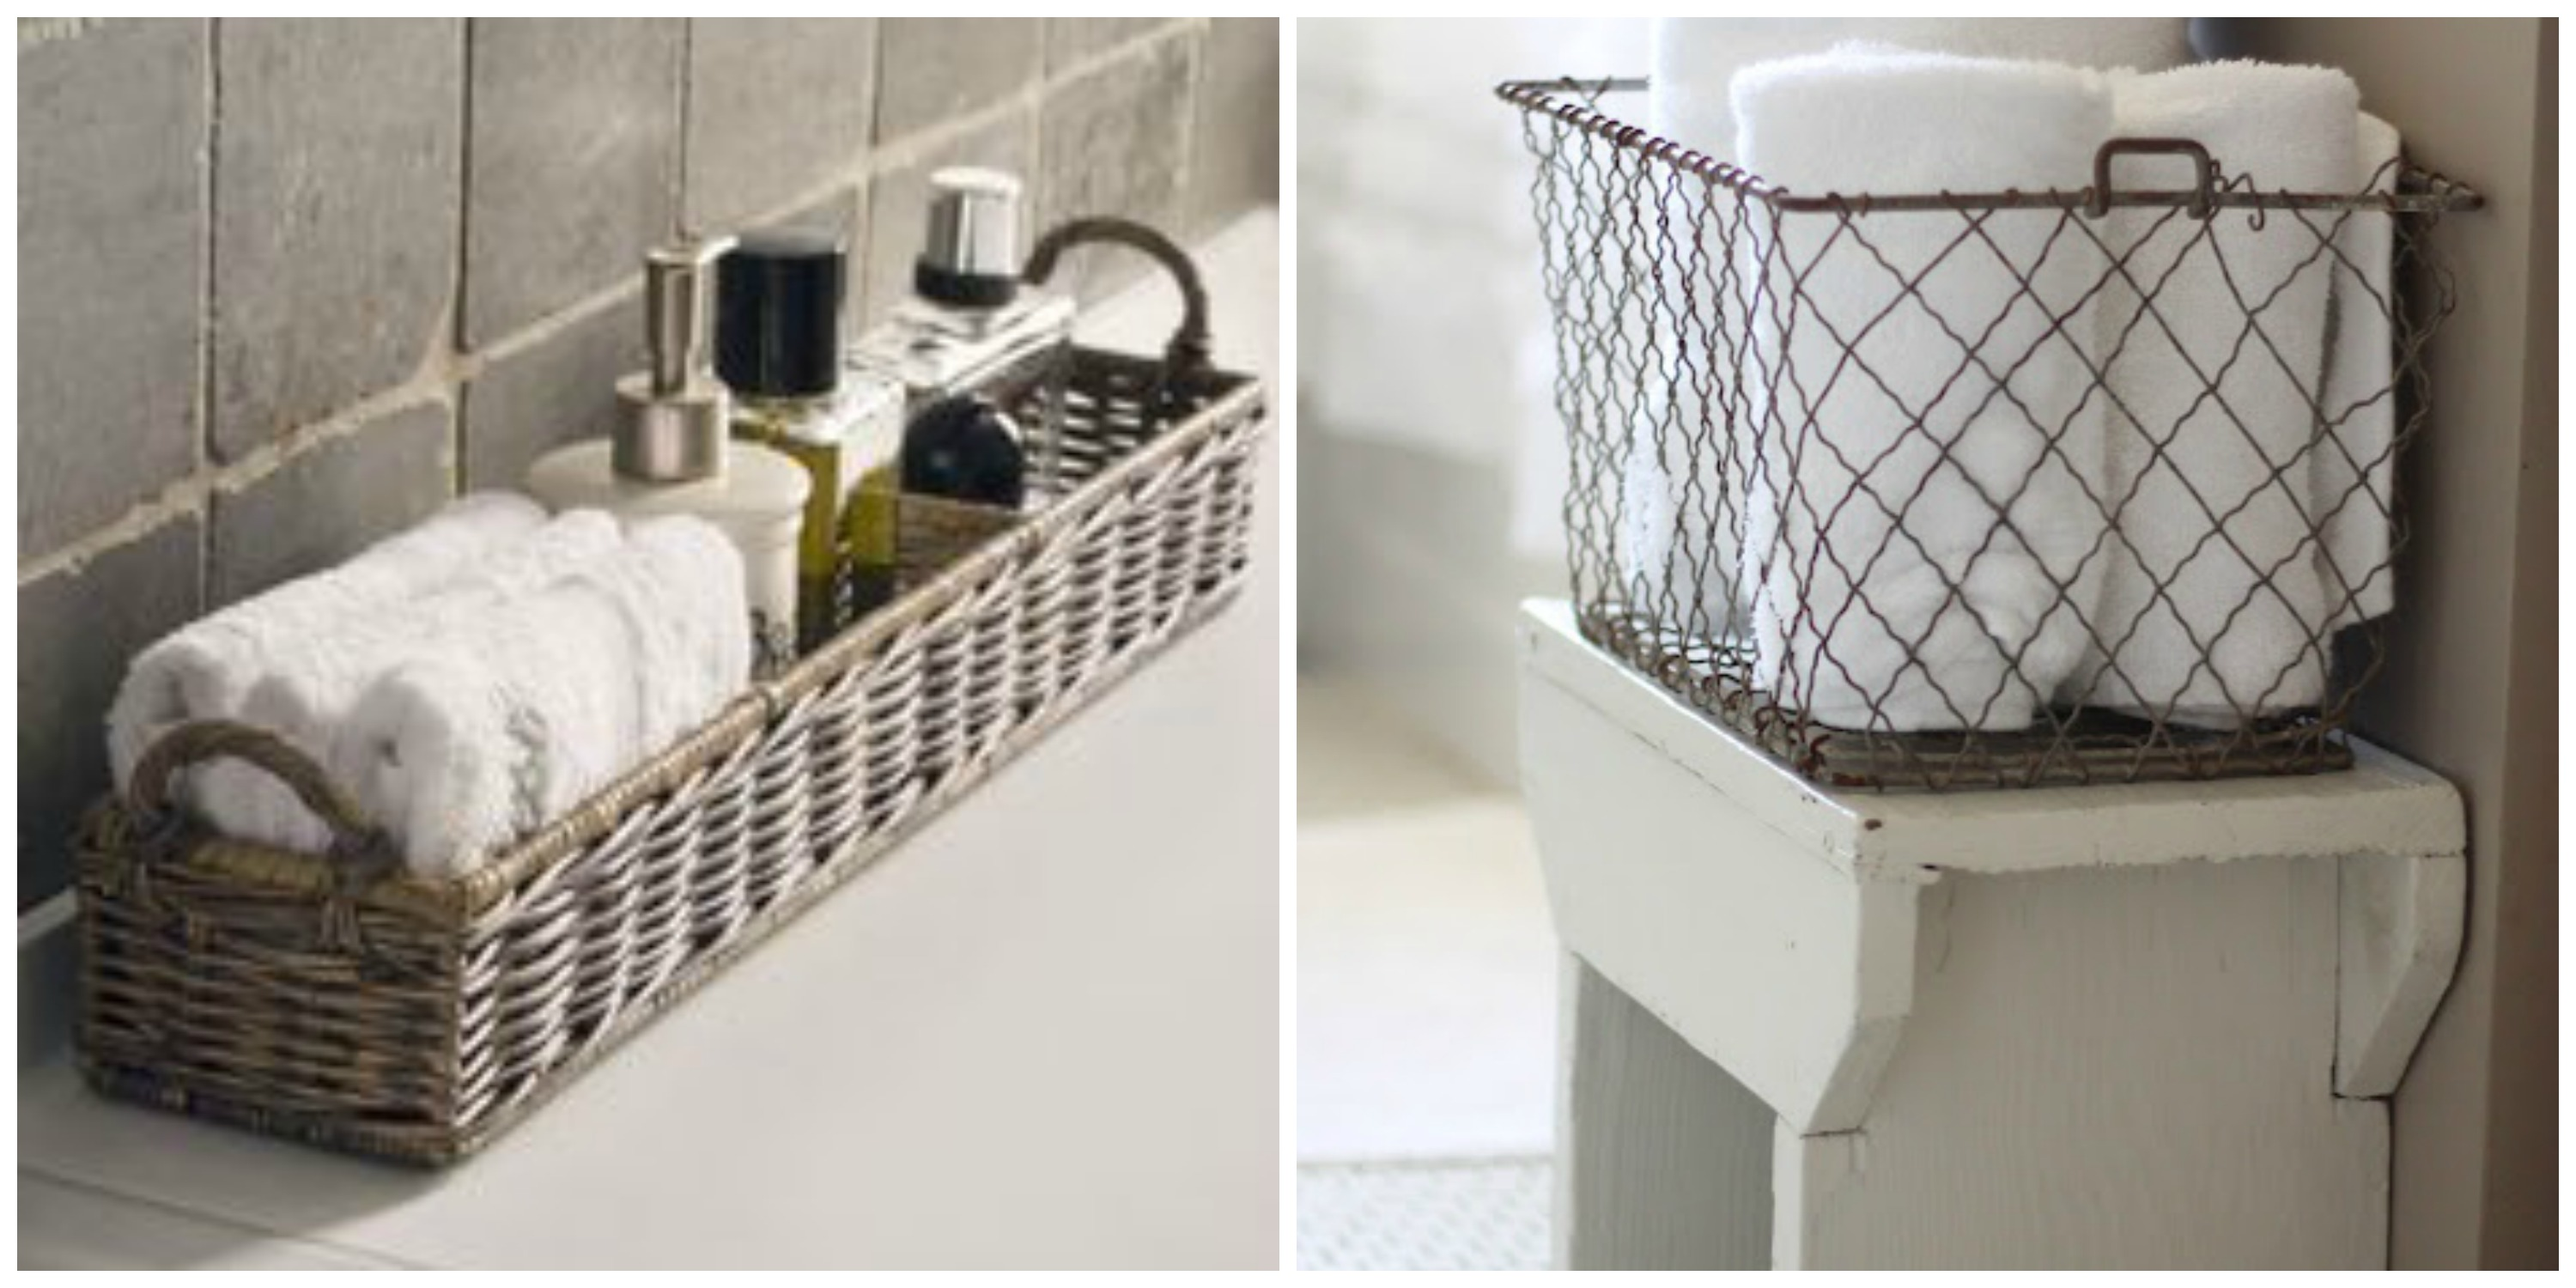 bathroombasketideas - Bathroom Baskets